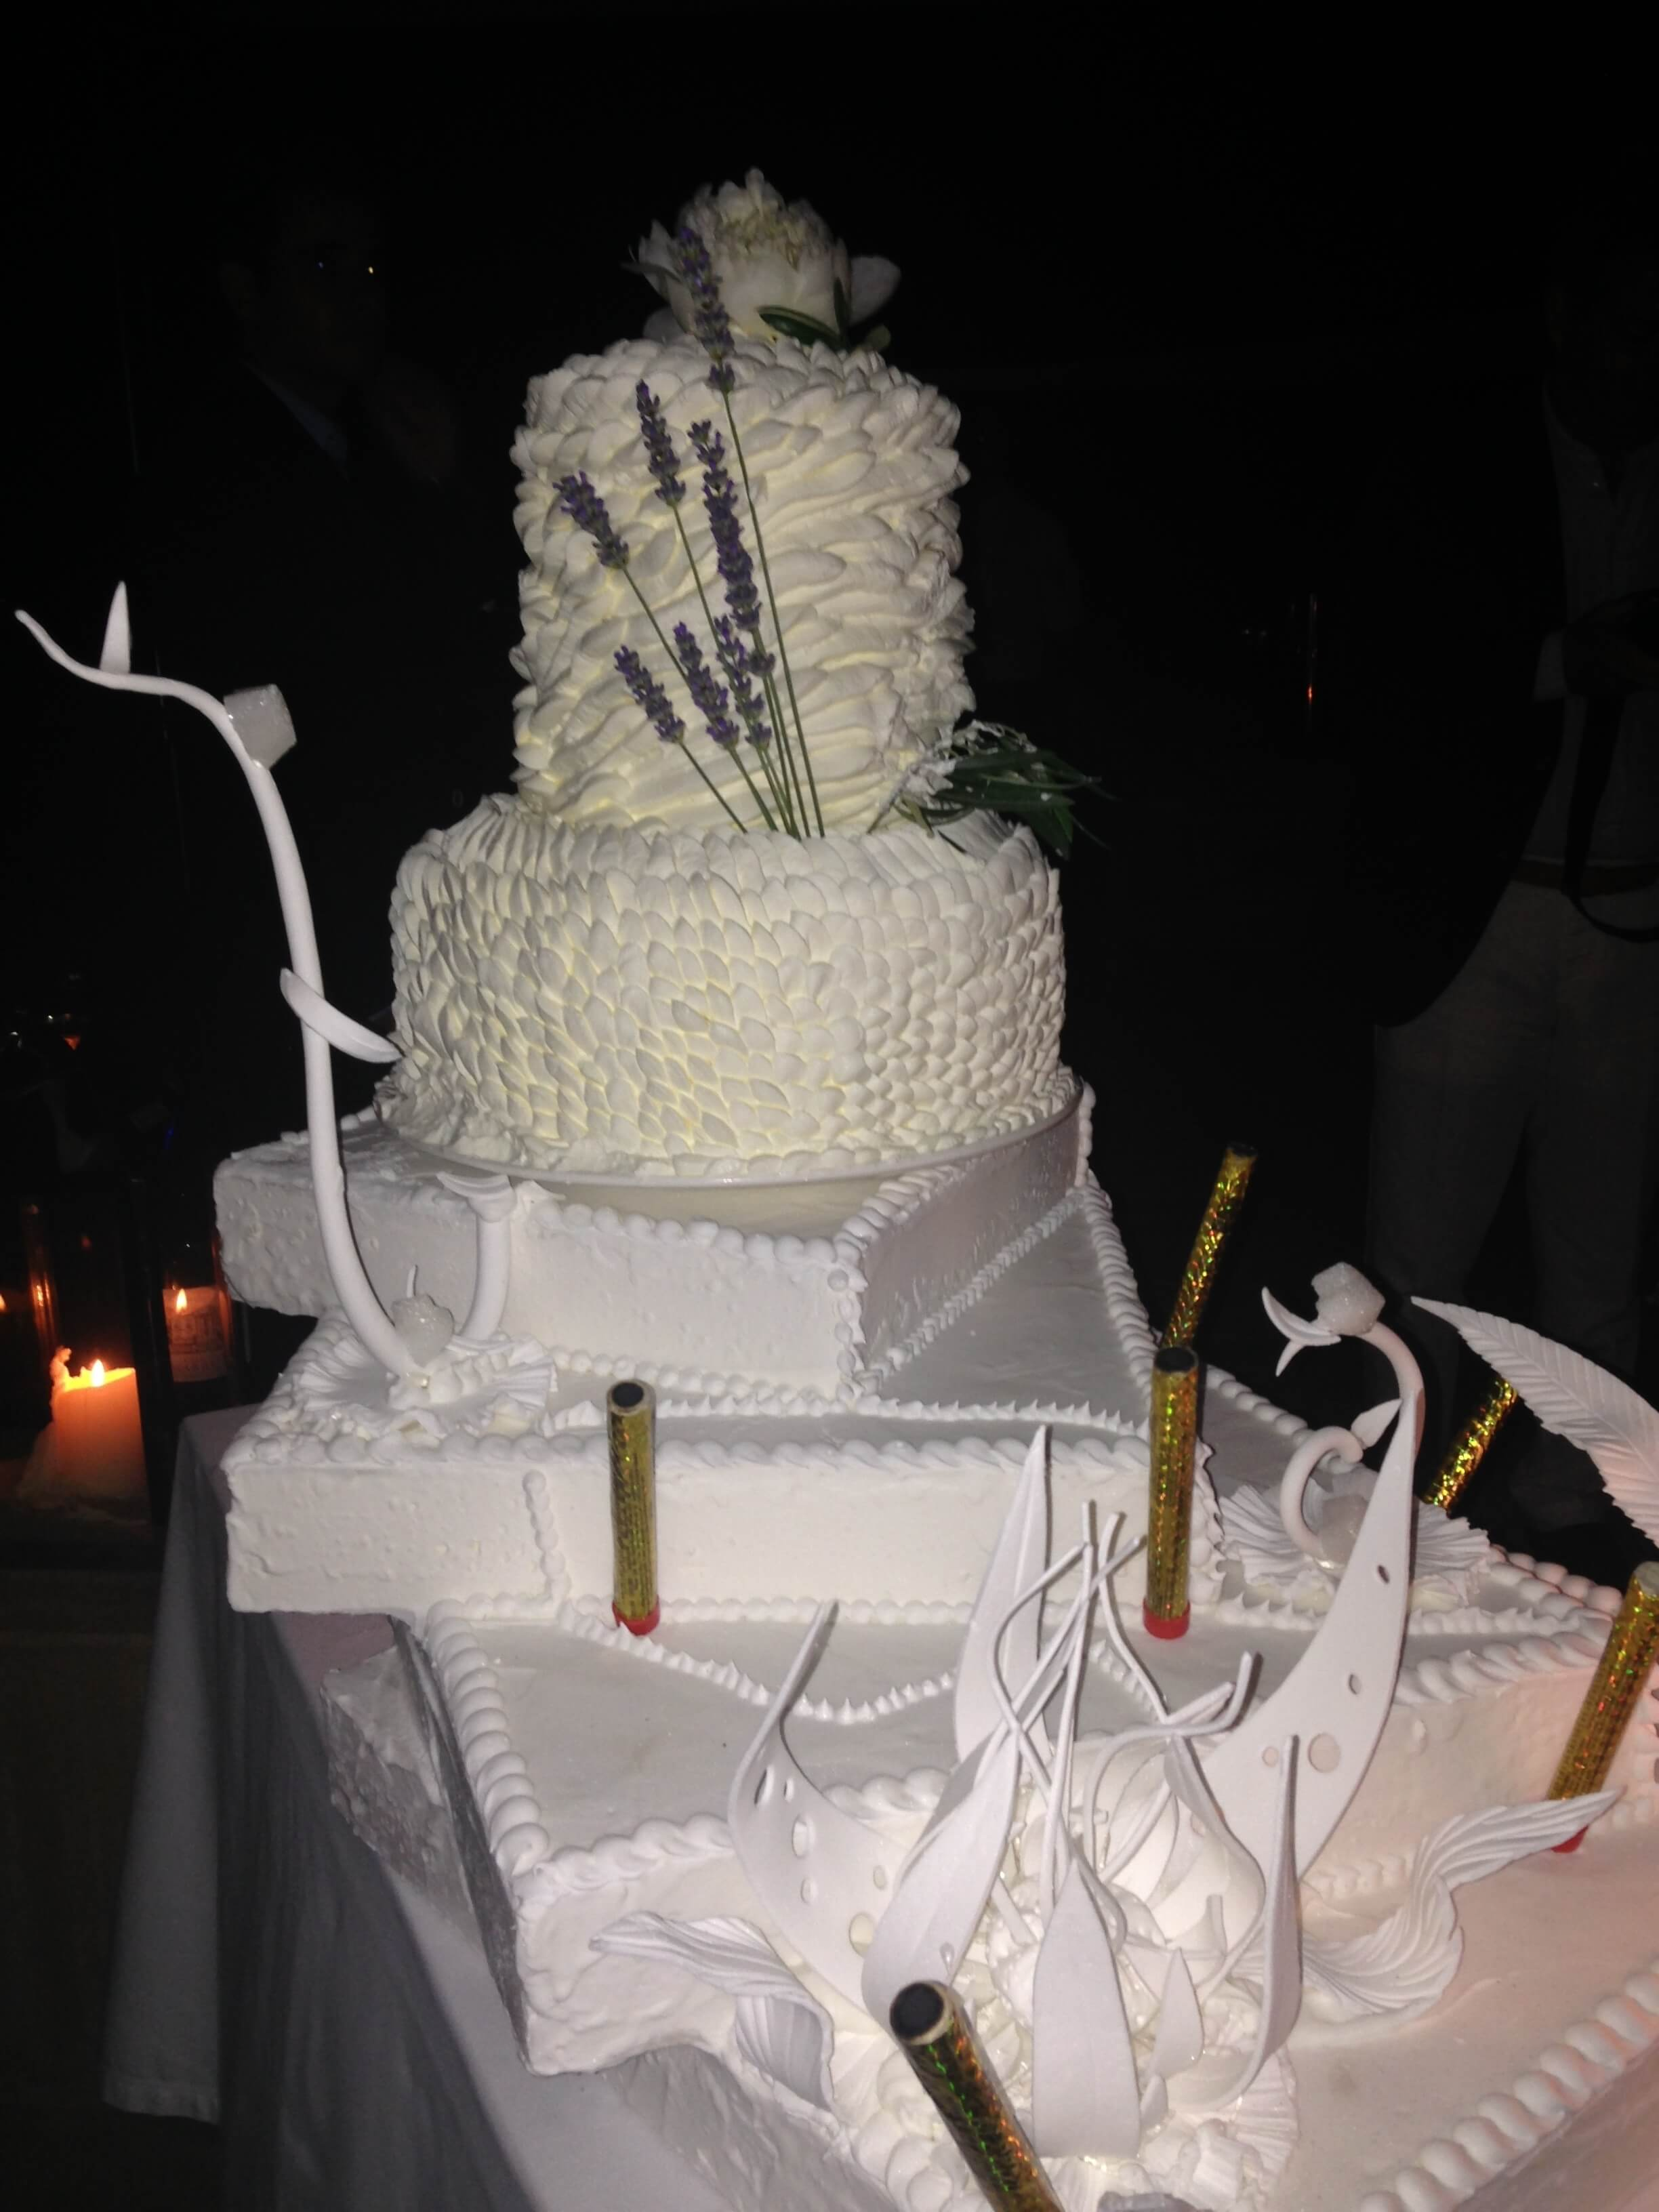 Pièce artistique mariage - weeding cake by Vincent Catala Chef Pâtissier & Cuisinier/French Private Kitchen & Pastry Chef - Catering in Miami